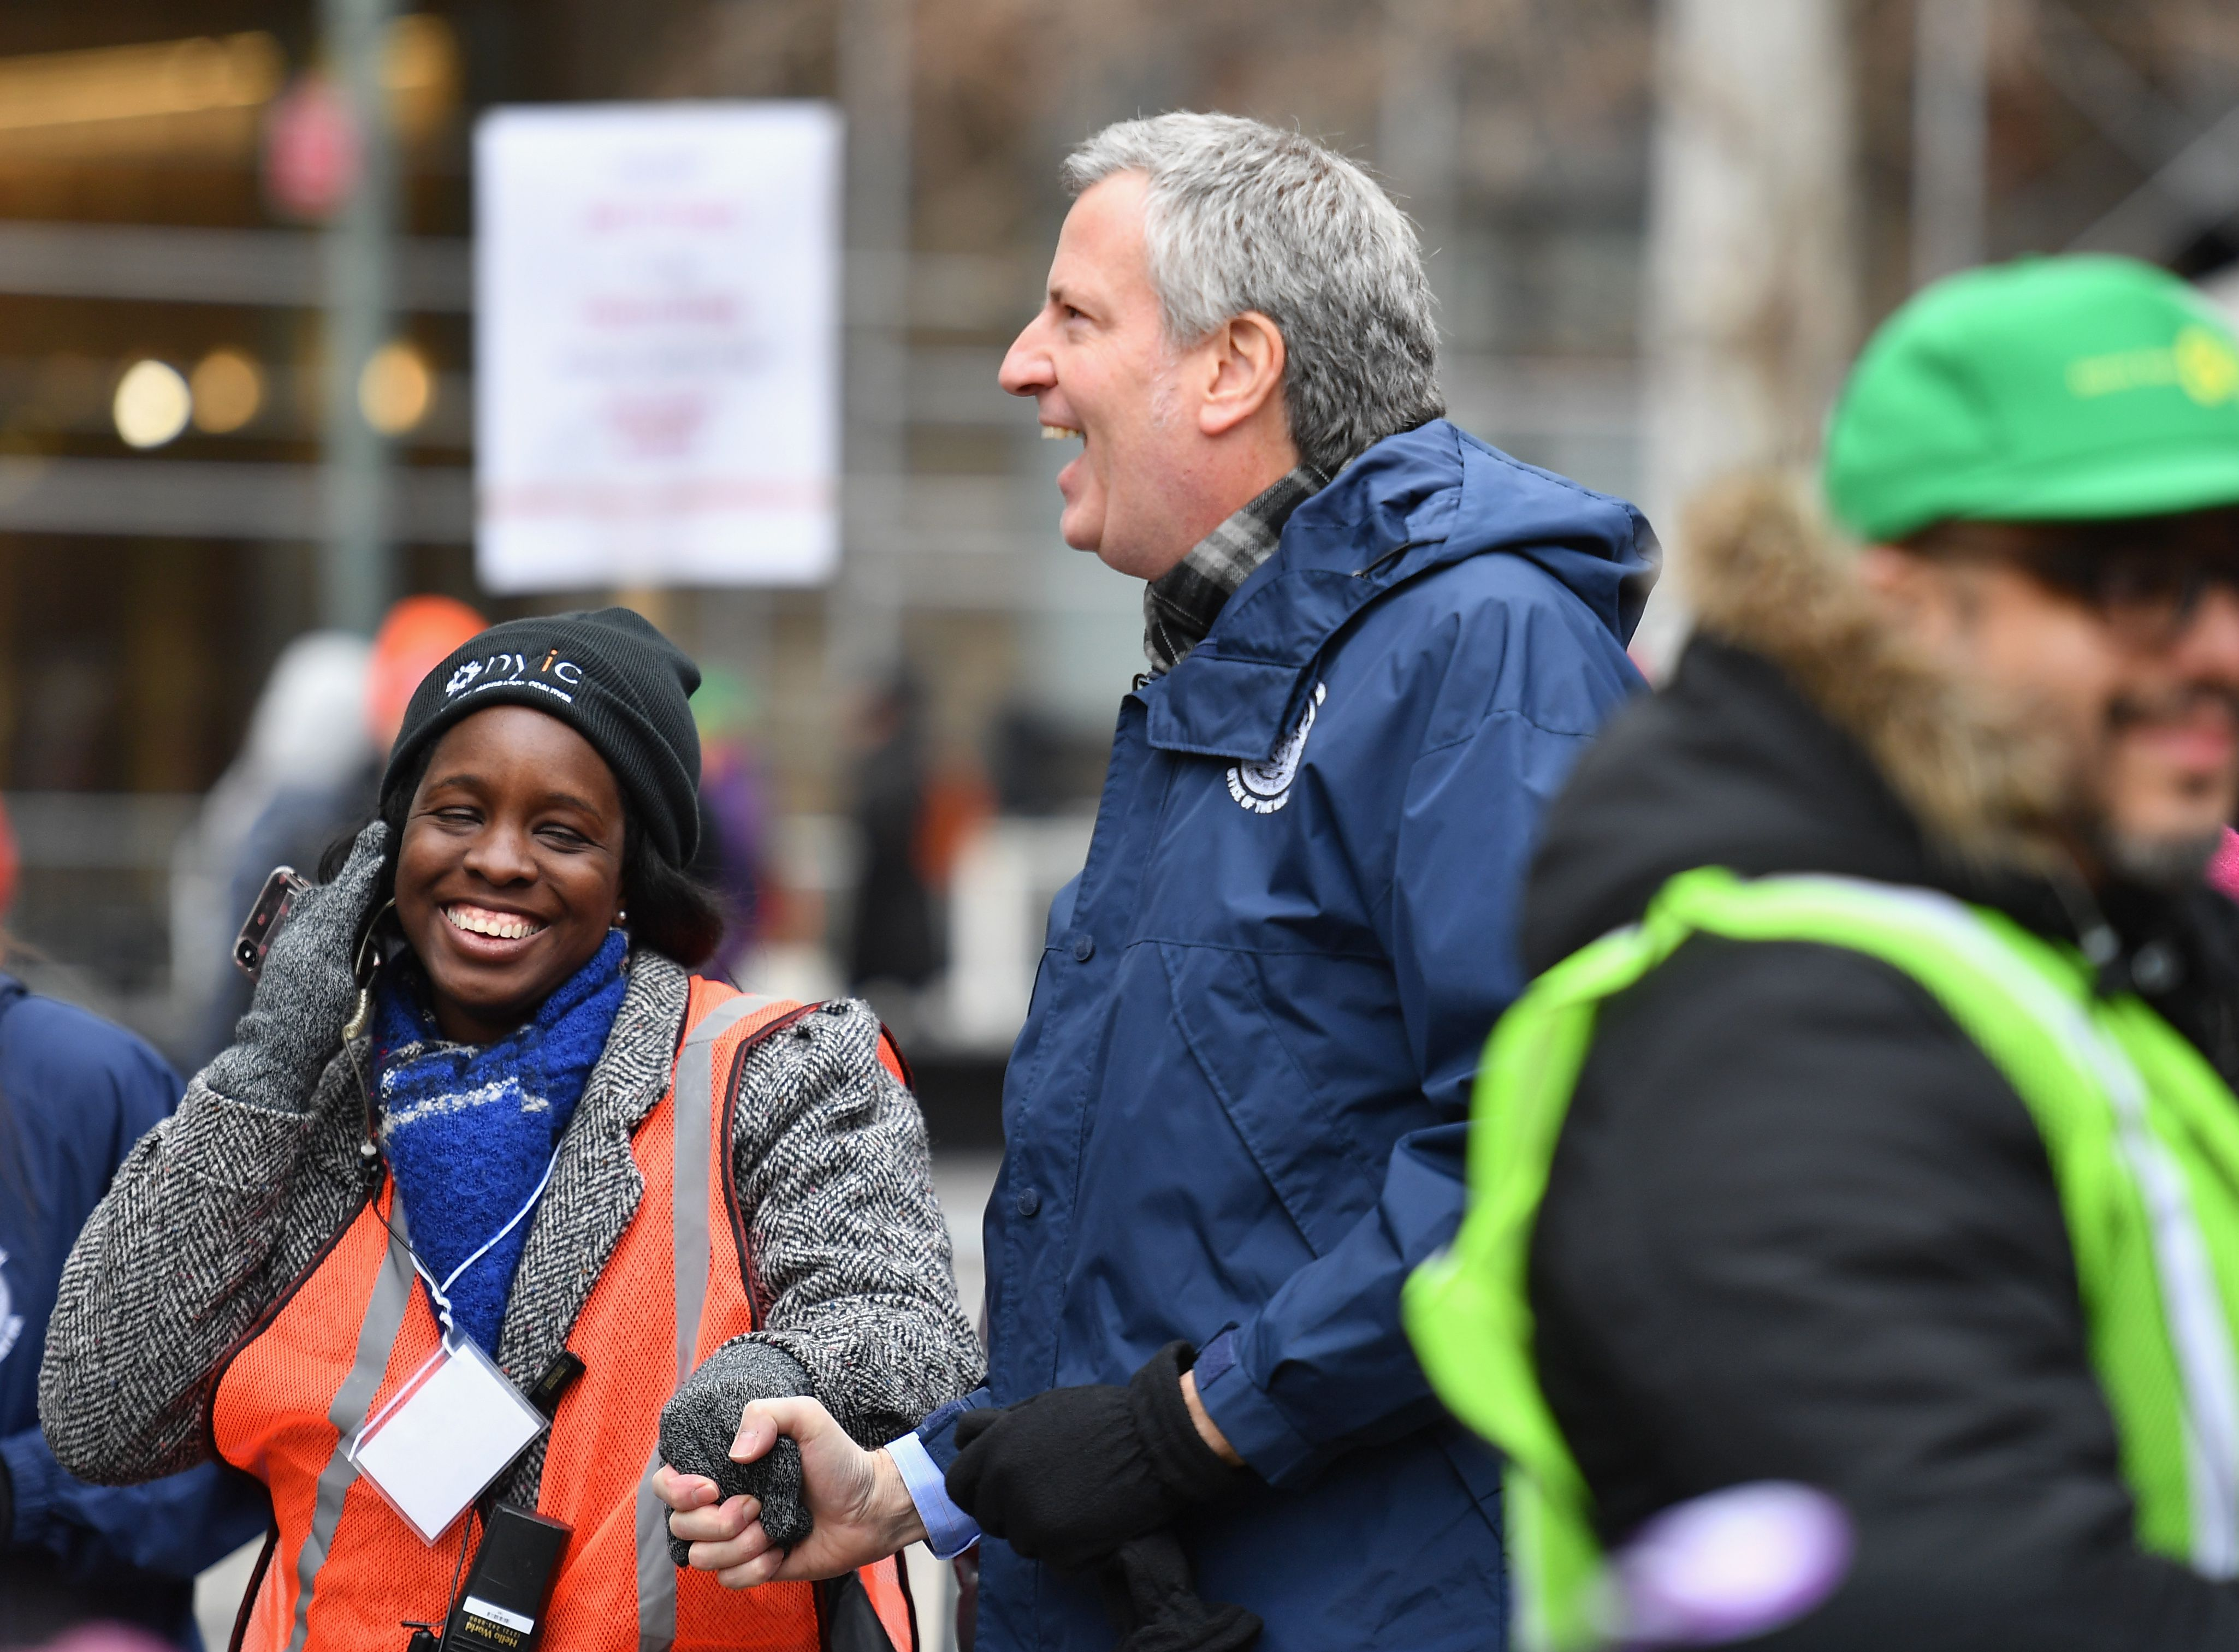 Mayor of New York Bill de Blasio watches as his wife Chirlane McCray speaks at the Women's Unity Rally at Foley Square on January 19, 2019 in New York City. (ANGELA WEISS/AFP/Getty Images)